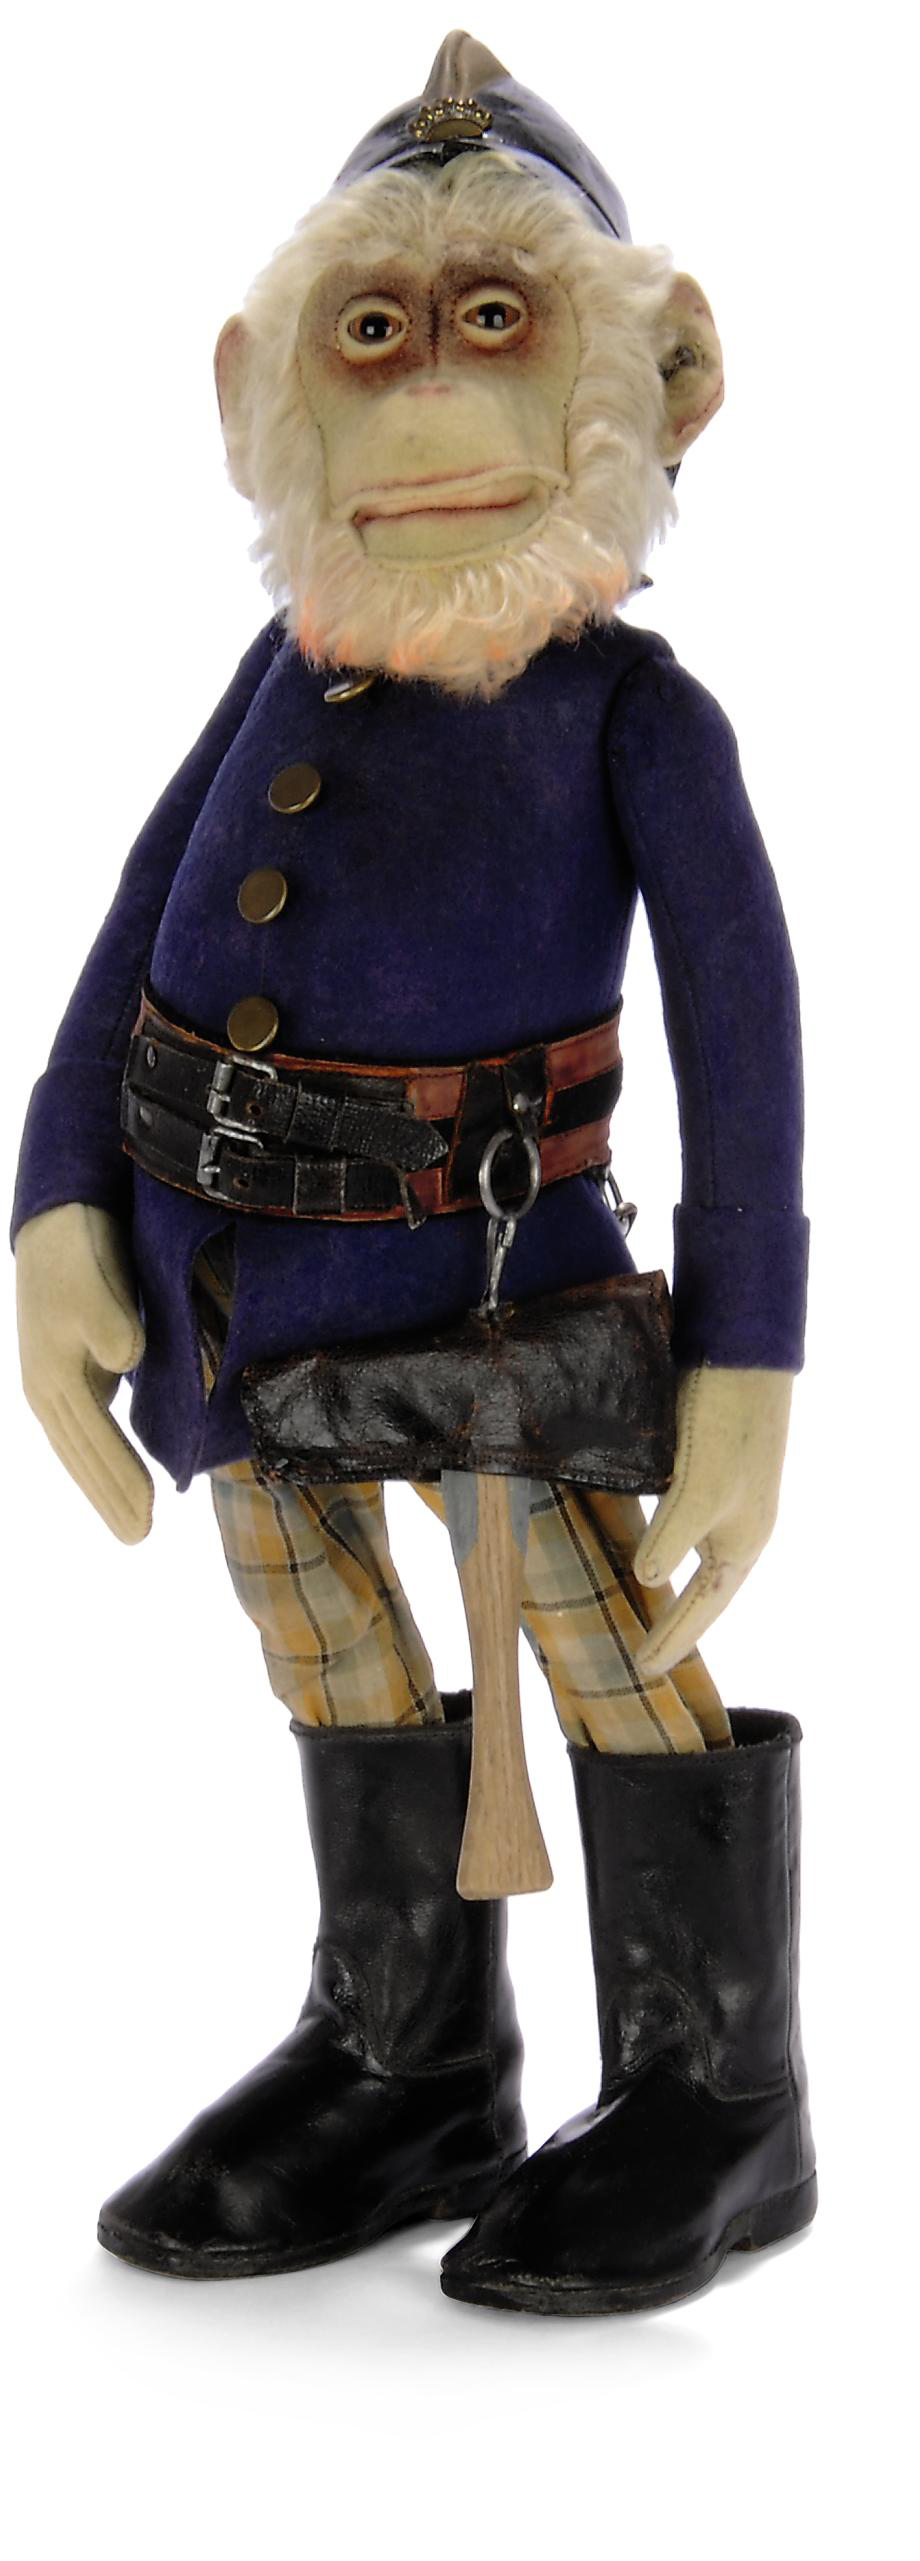 A STEIFF DISPLAY CHIMPANZEE FIREMAN, yellow mohair head, brown and black glass eyes, felt face, ears and hands, open mouth, swivel head, orange-tipped beard, integral blue felt jacket, jointed arms and legs, checked trousers, black leather boots, belt with axe and rope attached, brass buttons, pressed leather helmet with brass crown badge and FF button, 1920s --18in. (45.5cm.) high (some fading and slight wear)